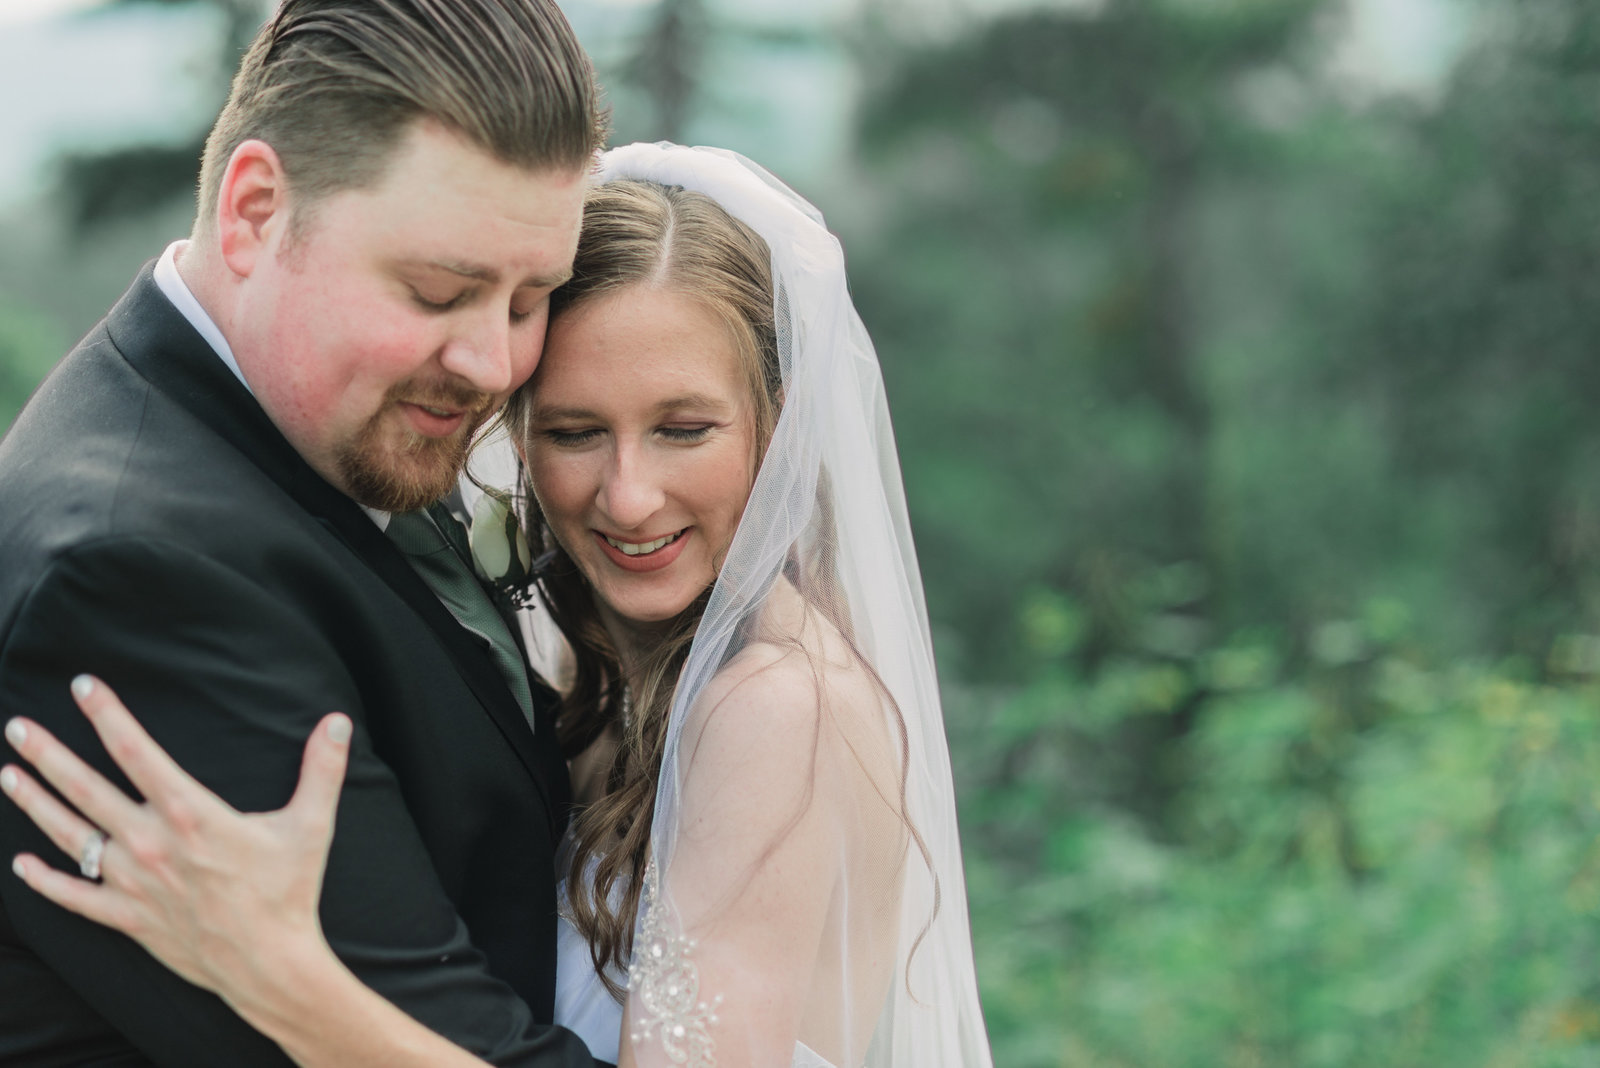 asheville wedding photographer -7276727672767276